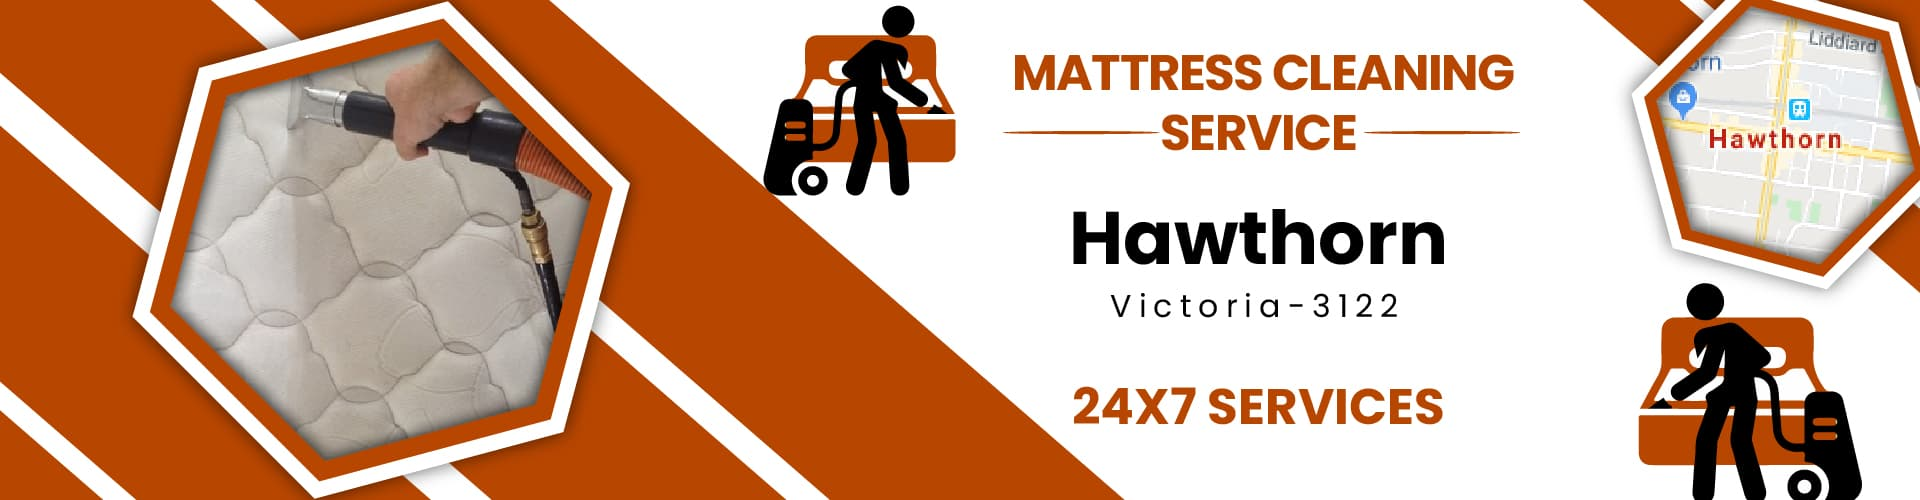 Mattress Cleaning Hawthorn